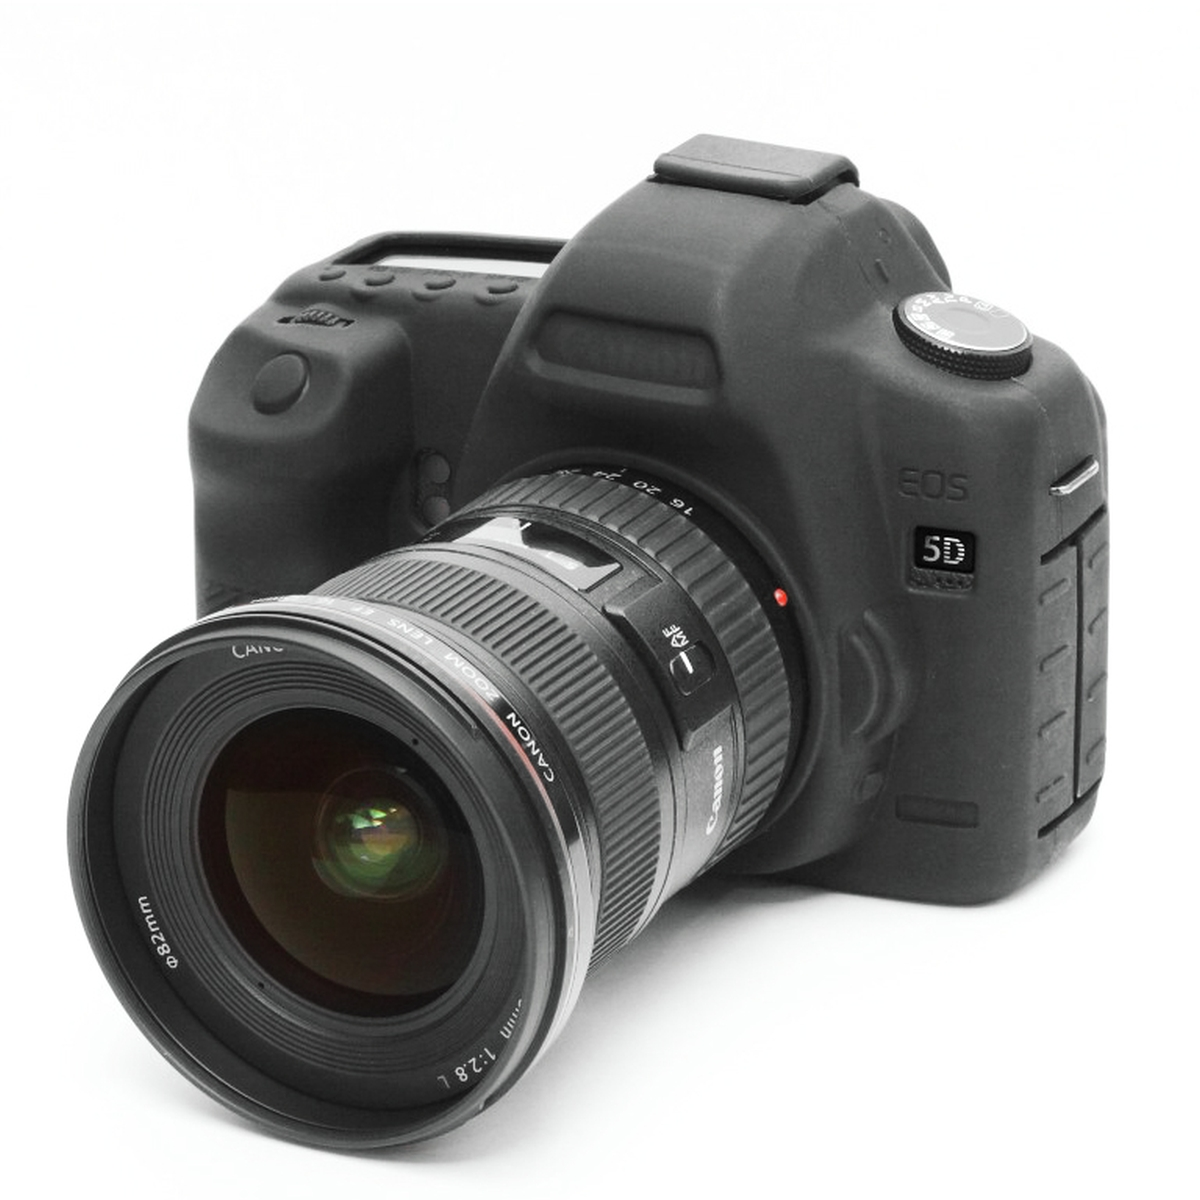 Walimex pro easyCover for Canon 5D Mark II